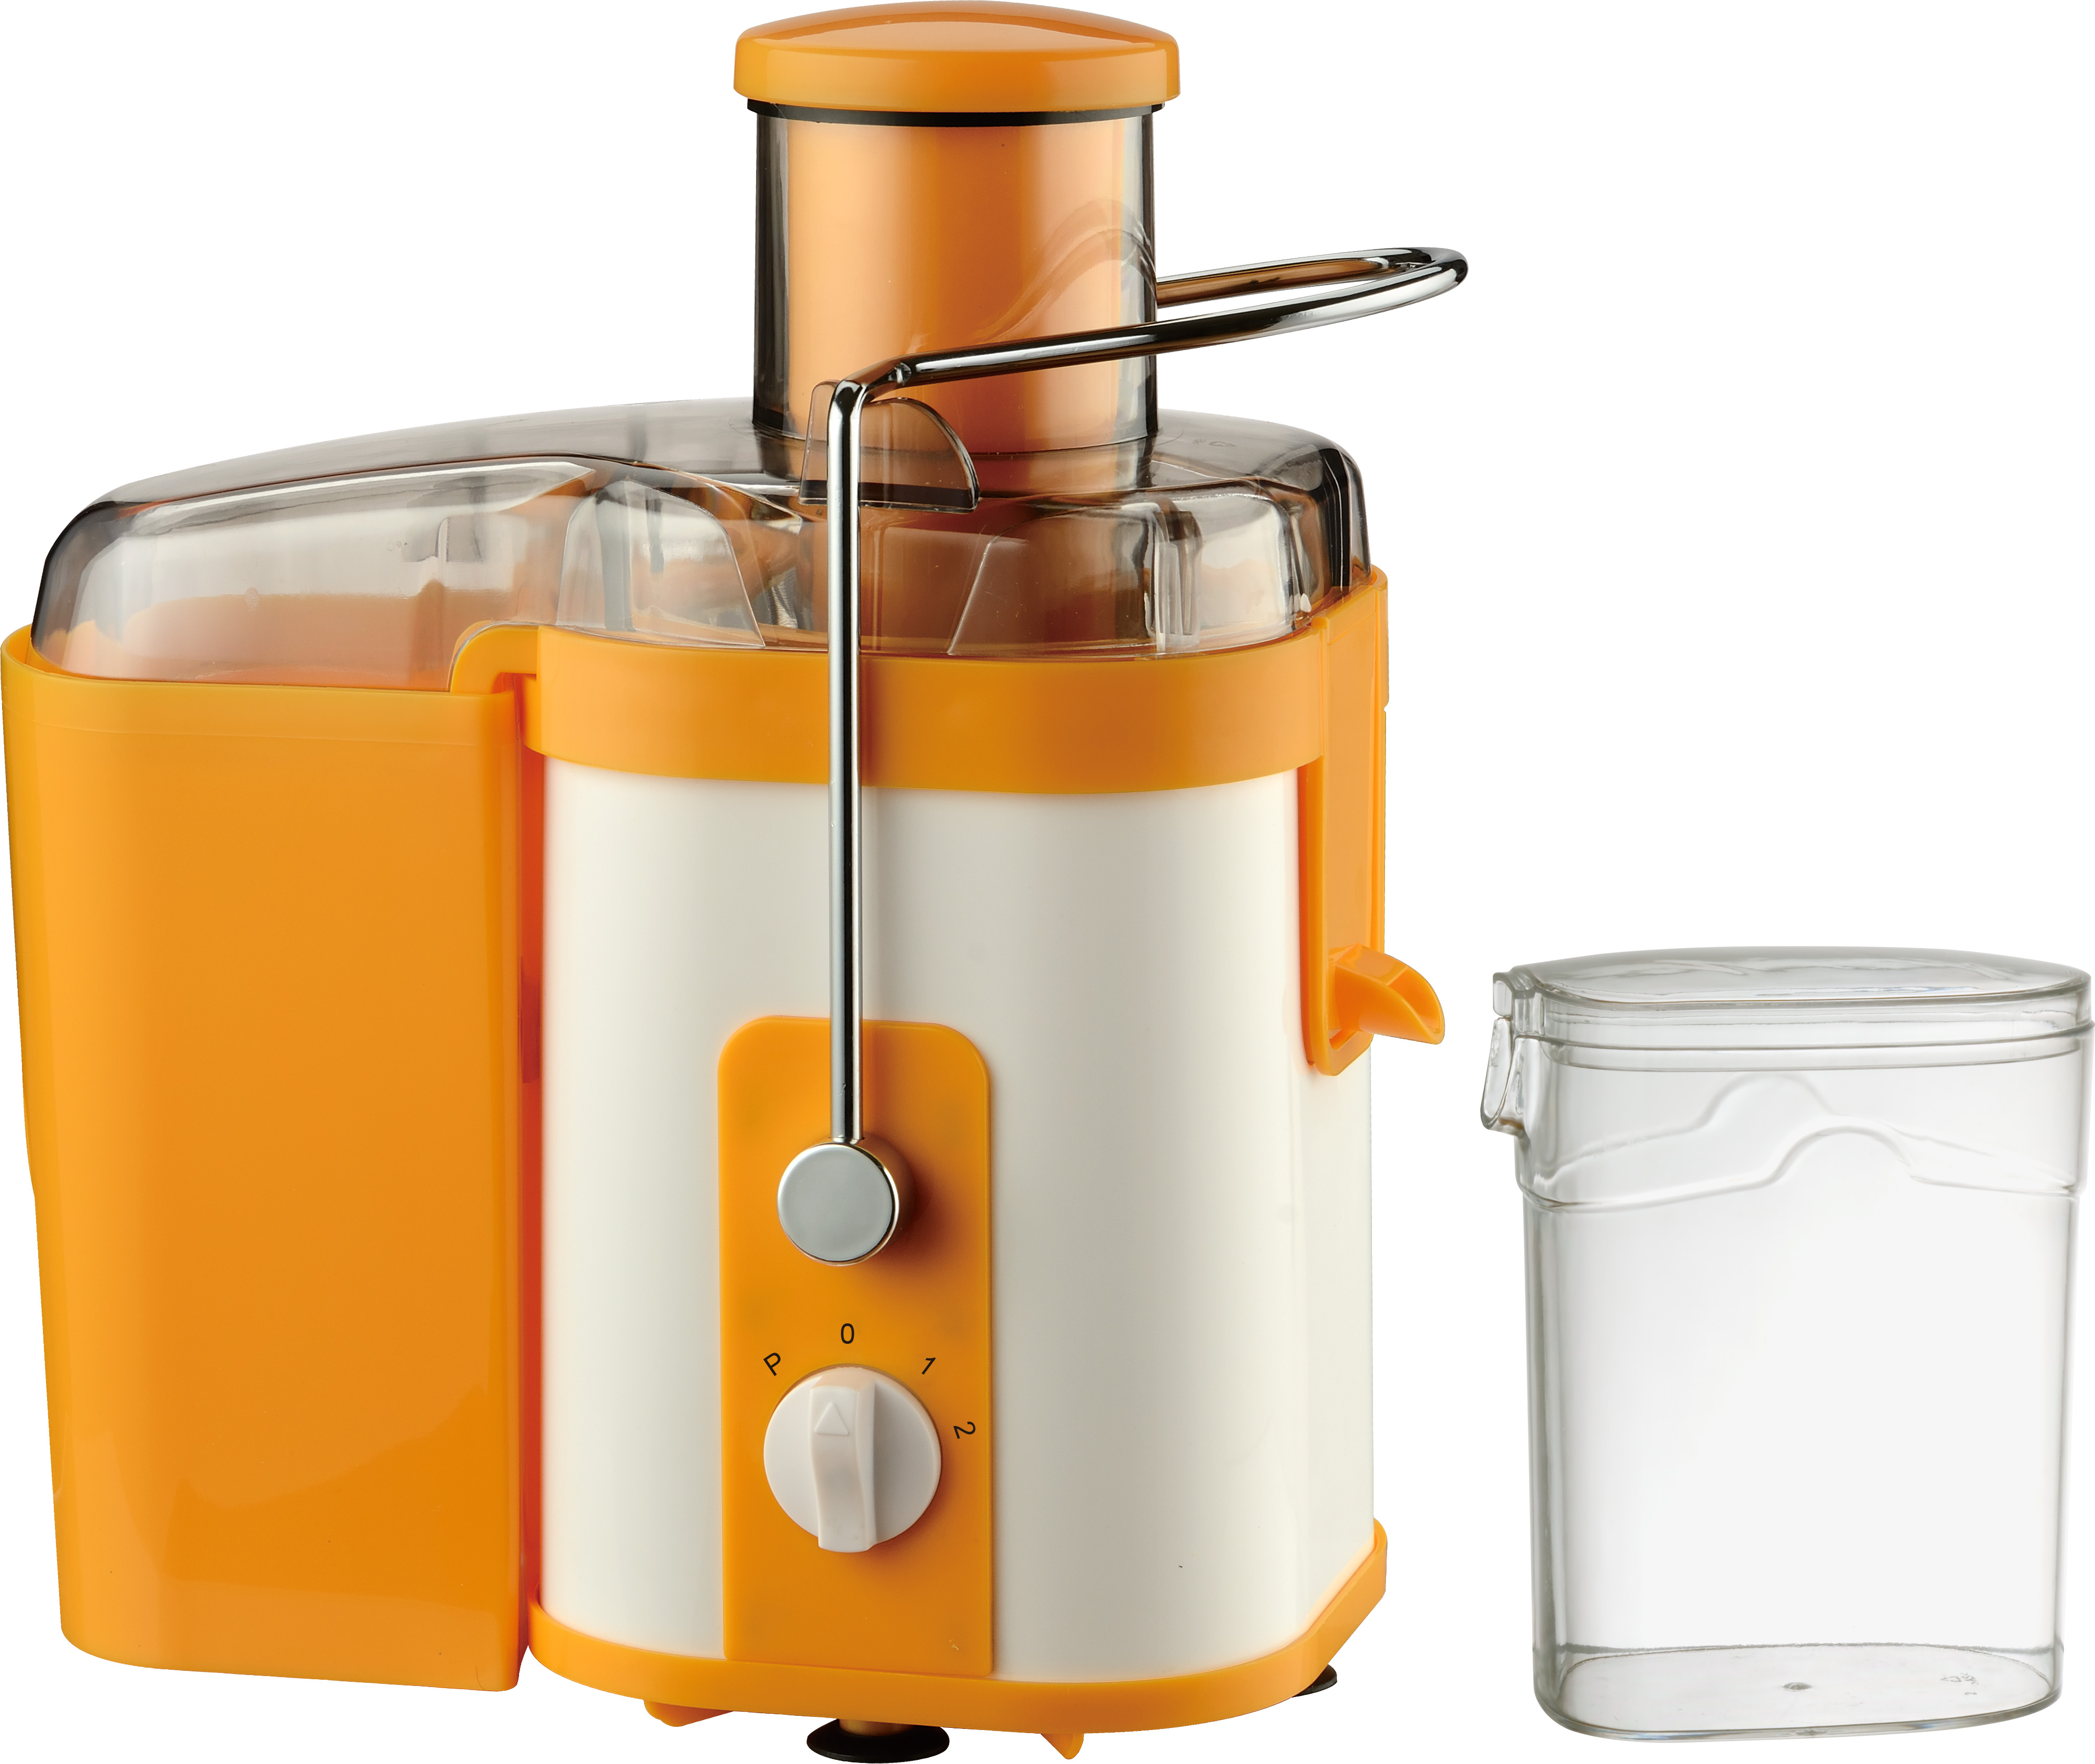 Powerful Juicer with Capacity